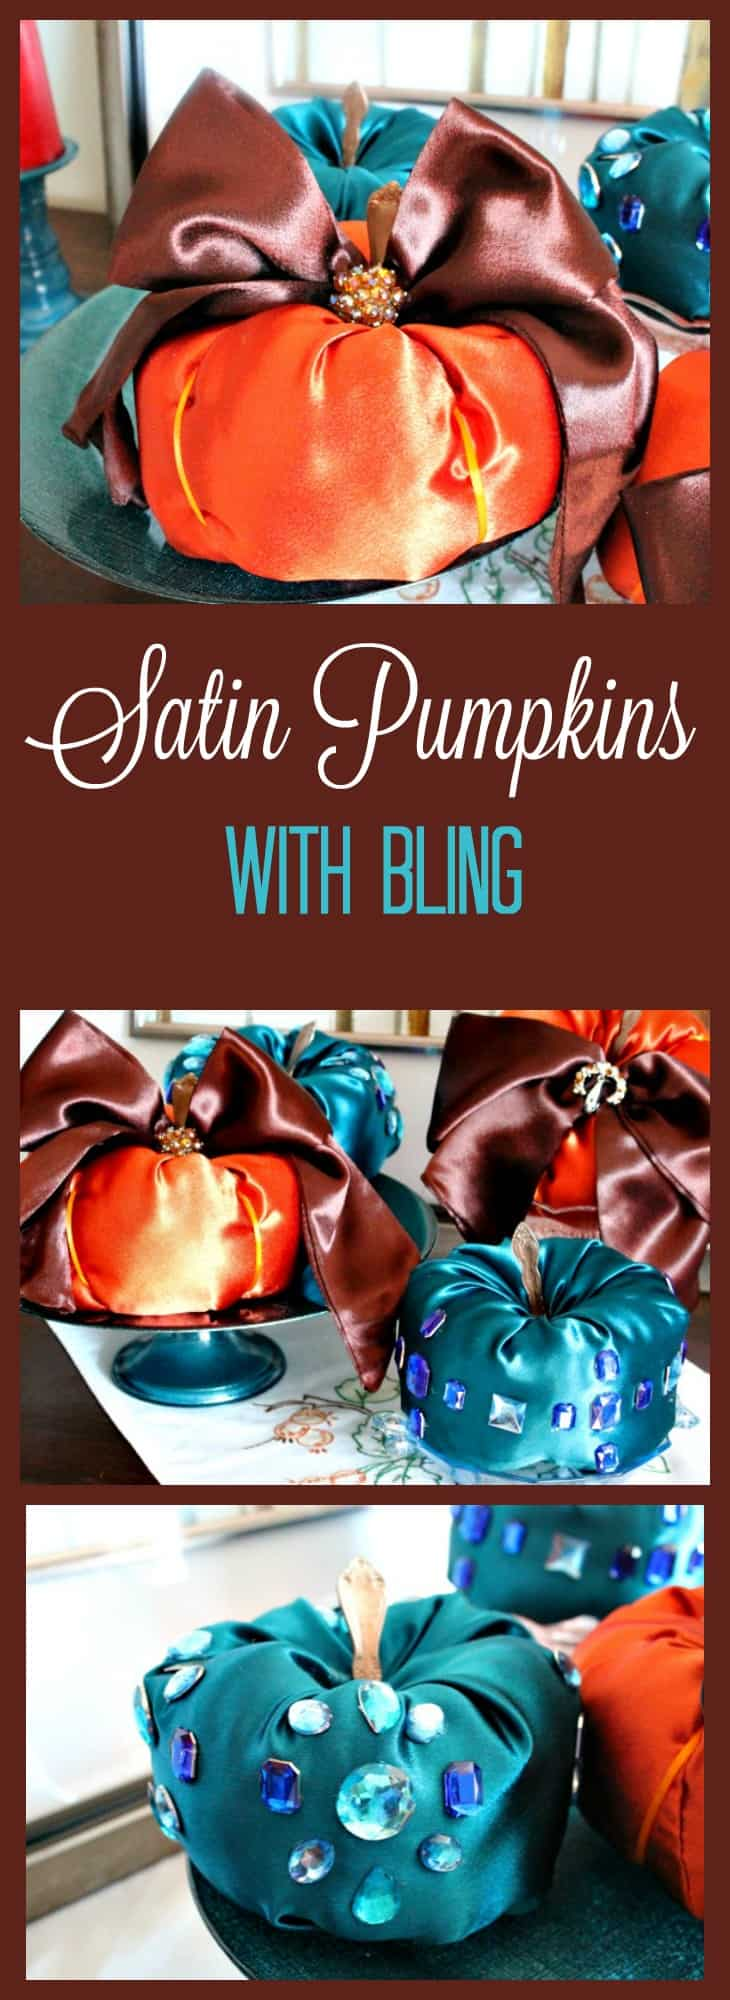 Diy Fabric Pumpkins, How to make fabric pumpkins, satin pumpkins, diy fall decor.